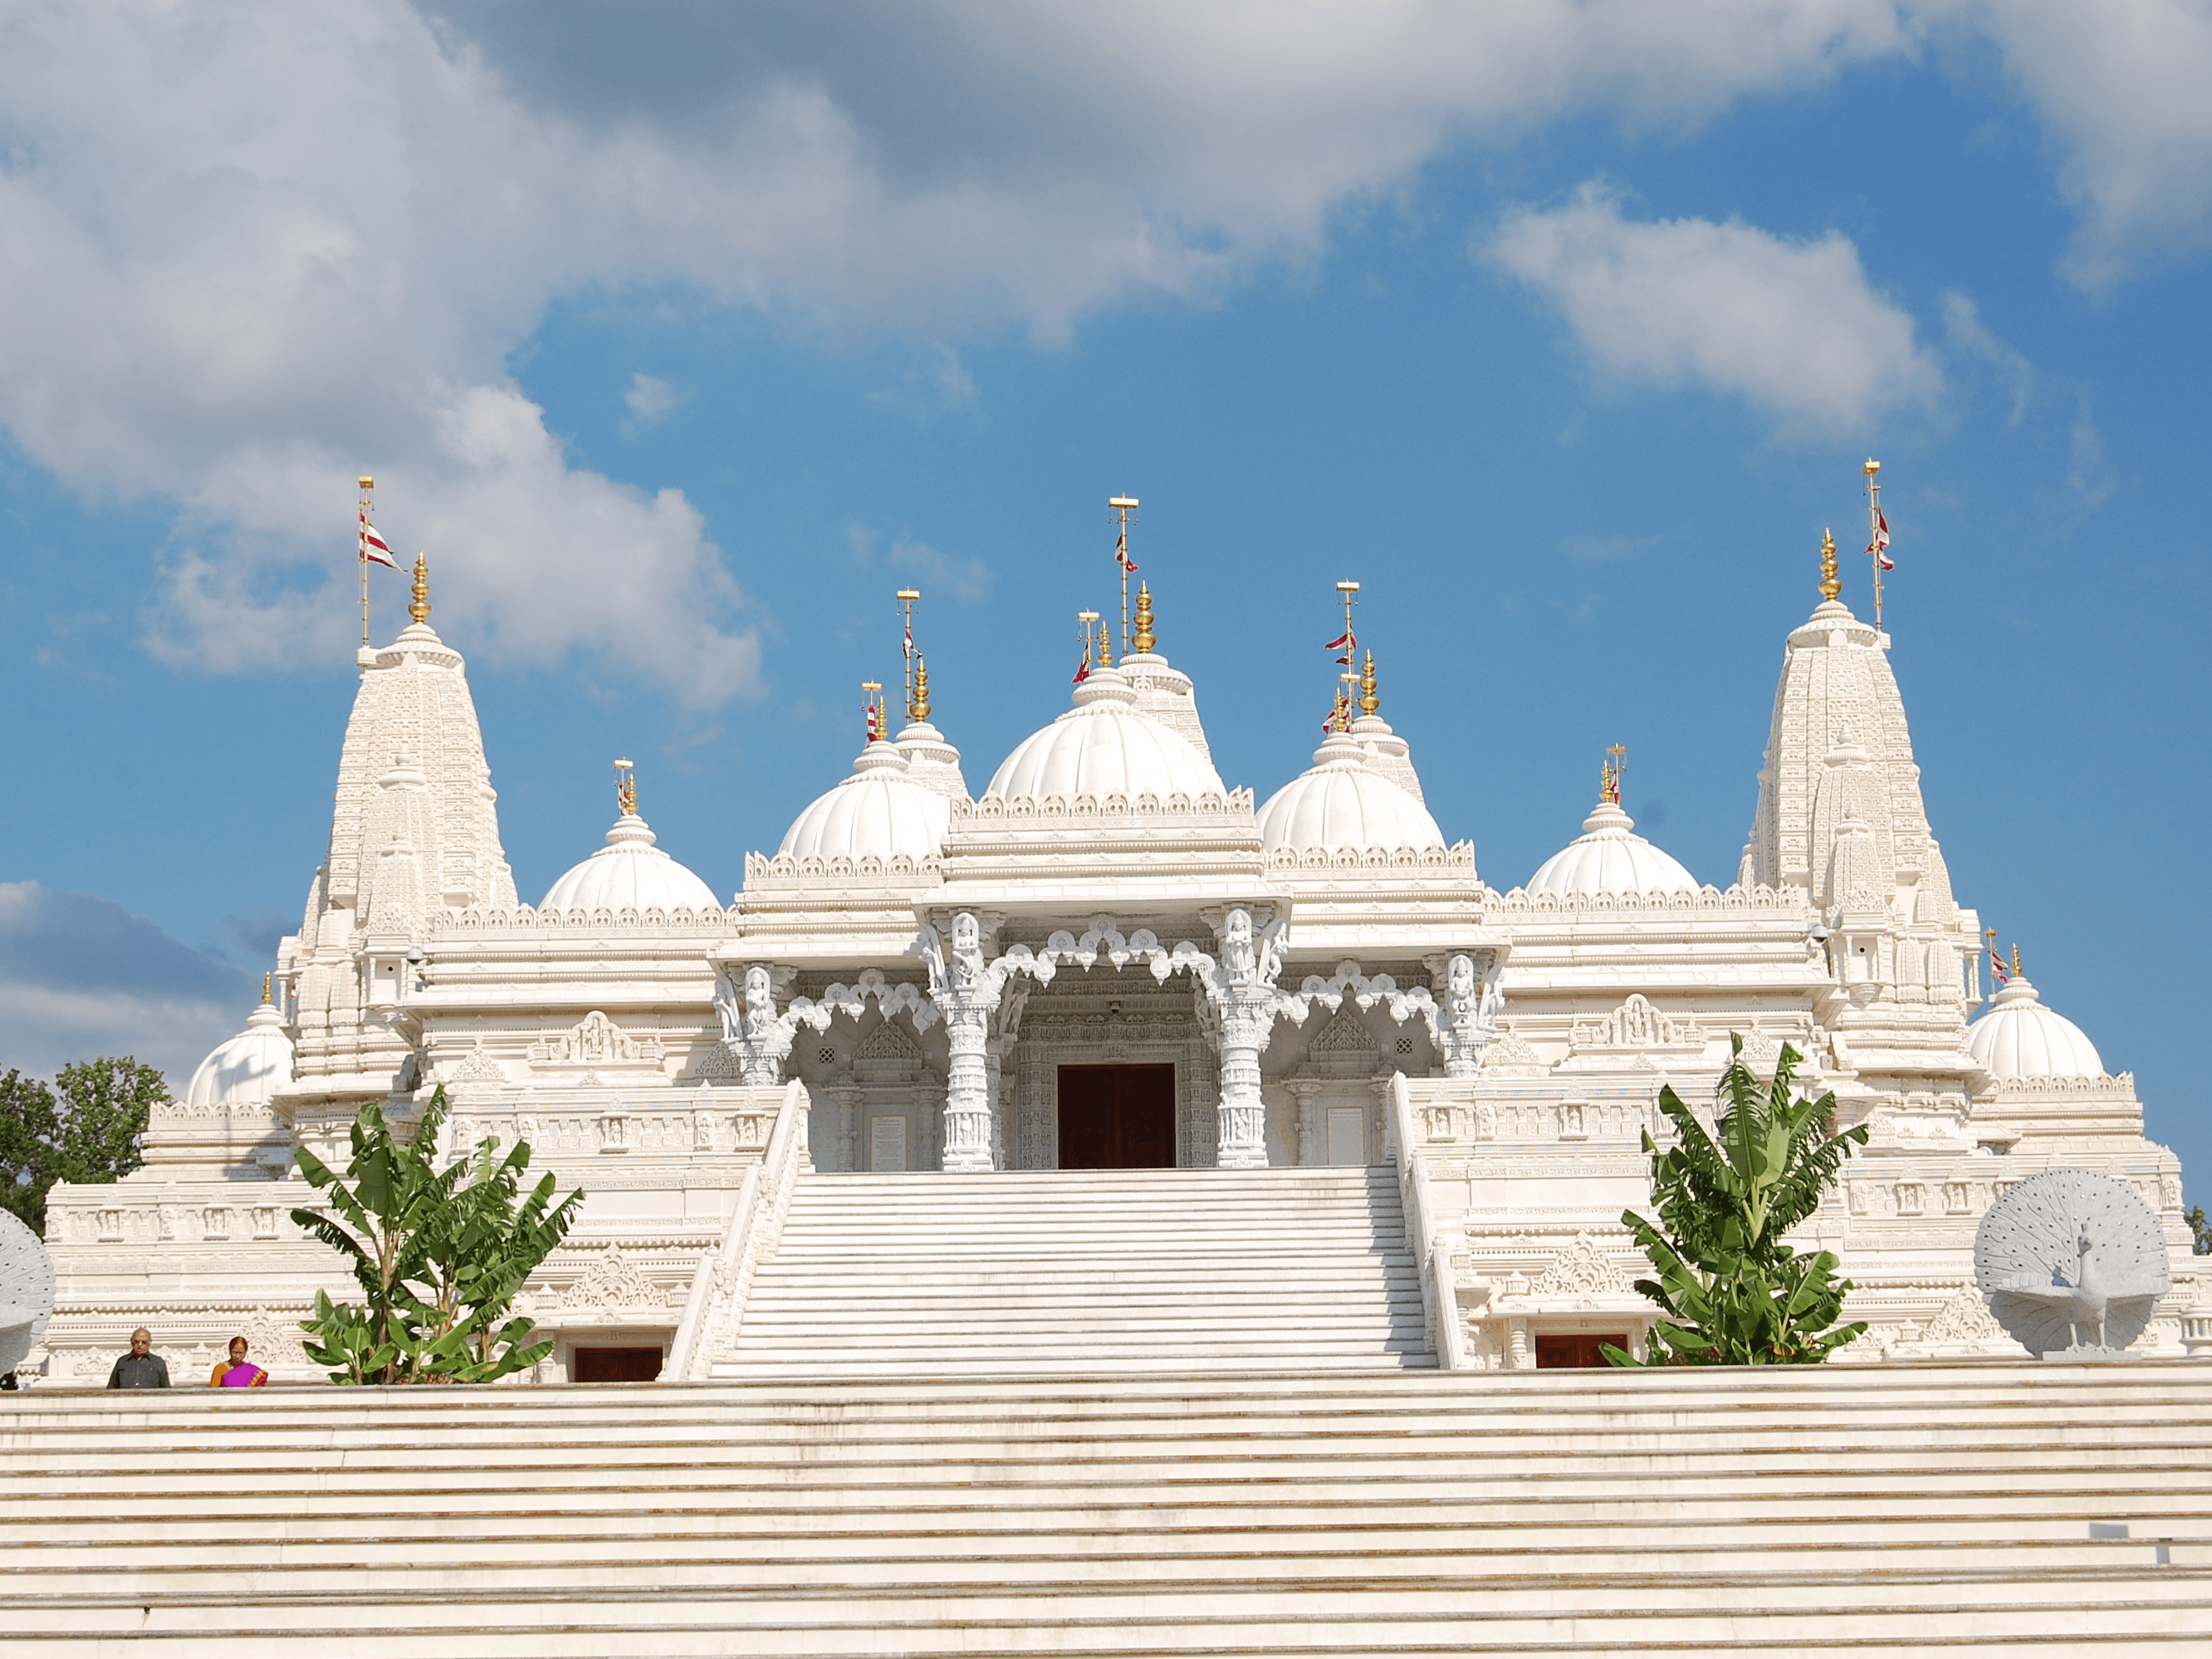 Sometimes our mental picture of certain regions doesn't fit reality. The largest Hindu temple — the BAPS Shri Swaminarayan Mandir — is located in Atlanta, Georgia.